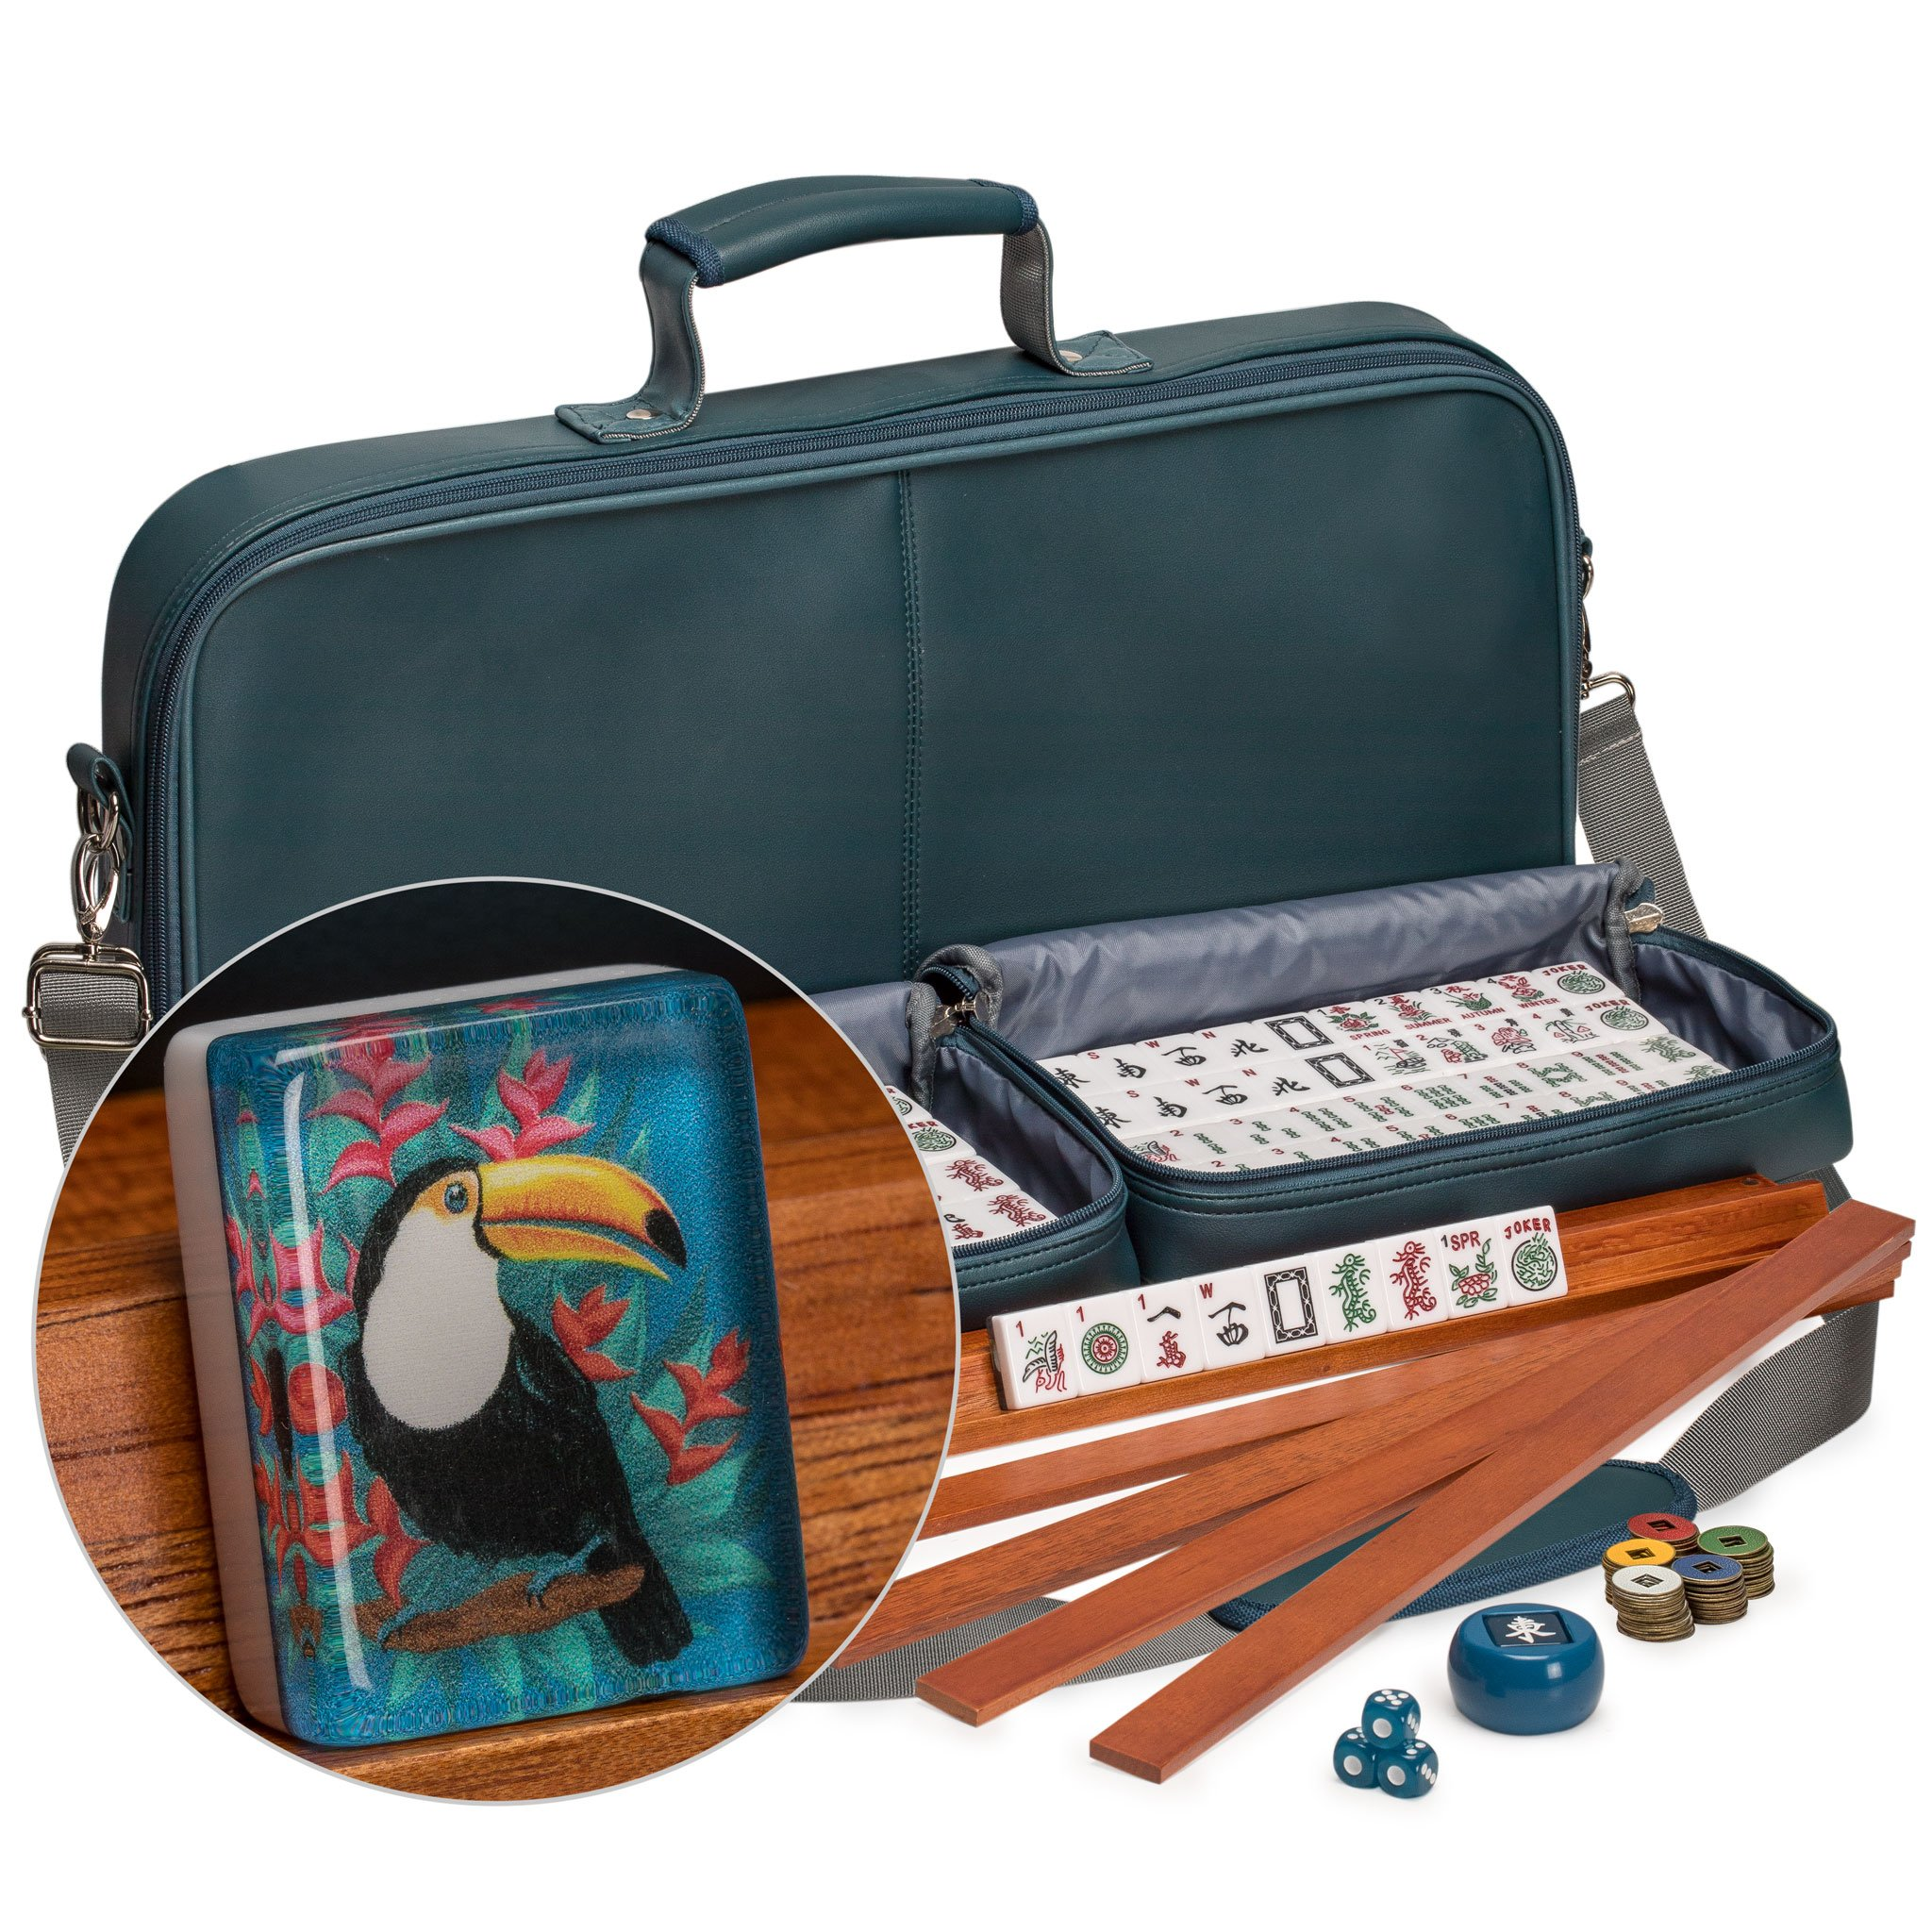 Yellow Mountain Imports American Mahjong Set with 166 Tiles Adorned with Toucan Motif, Leatherette Case, Racks with Pushers, Betting Coins, Dice, and Wind Indicator, ''Toucan''